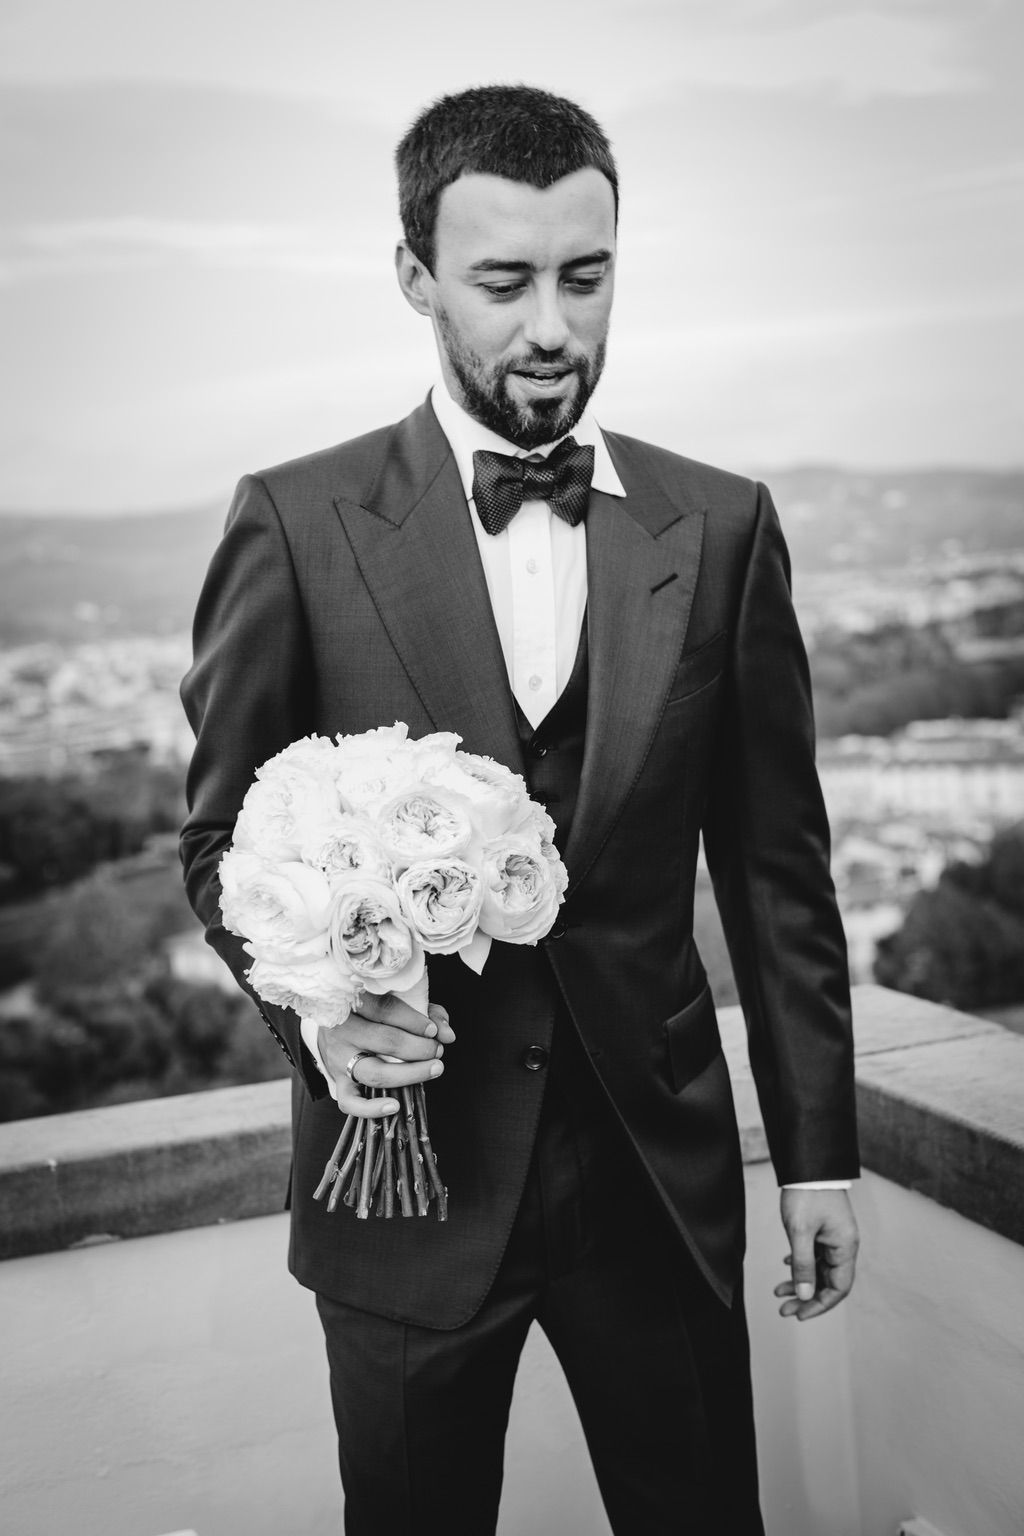 groom with a bouquet of peonies during his wedding in Italy